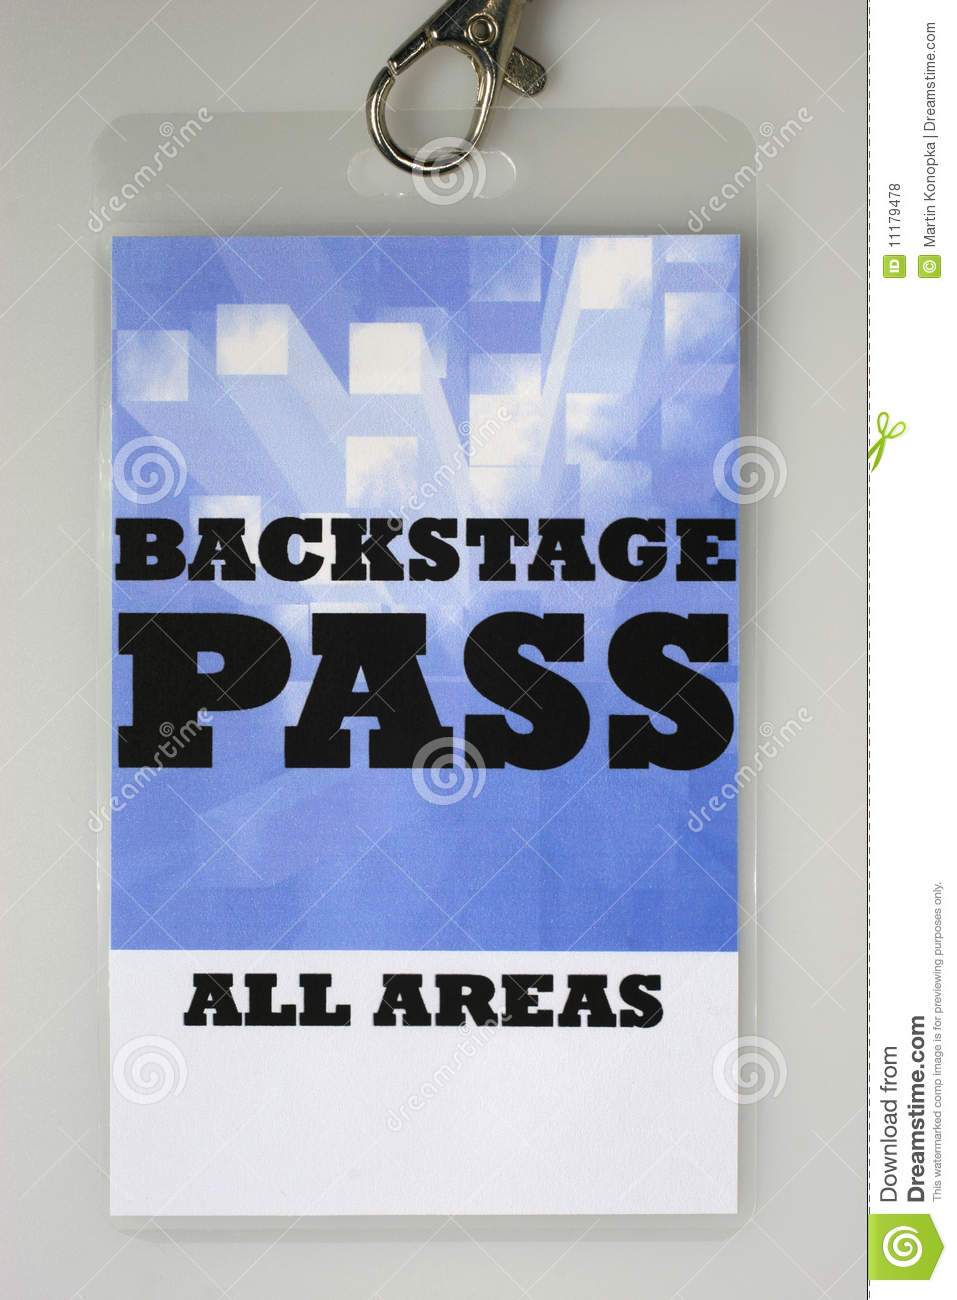 Backstage pass royalty free stock photos image 11179478